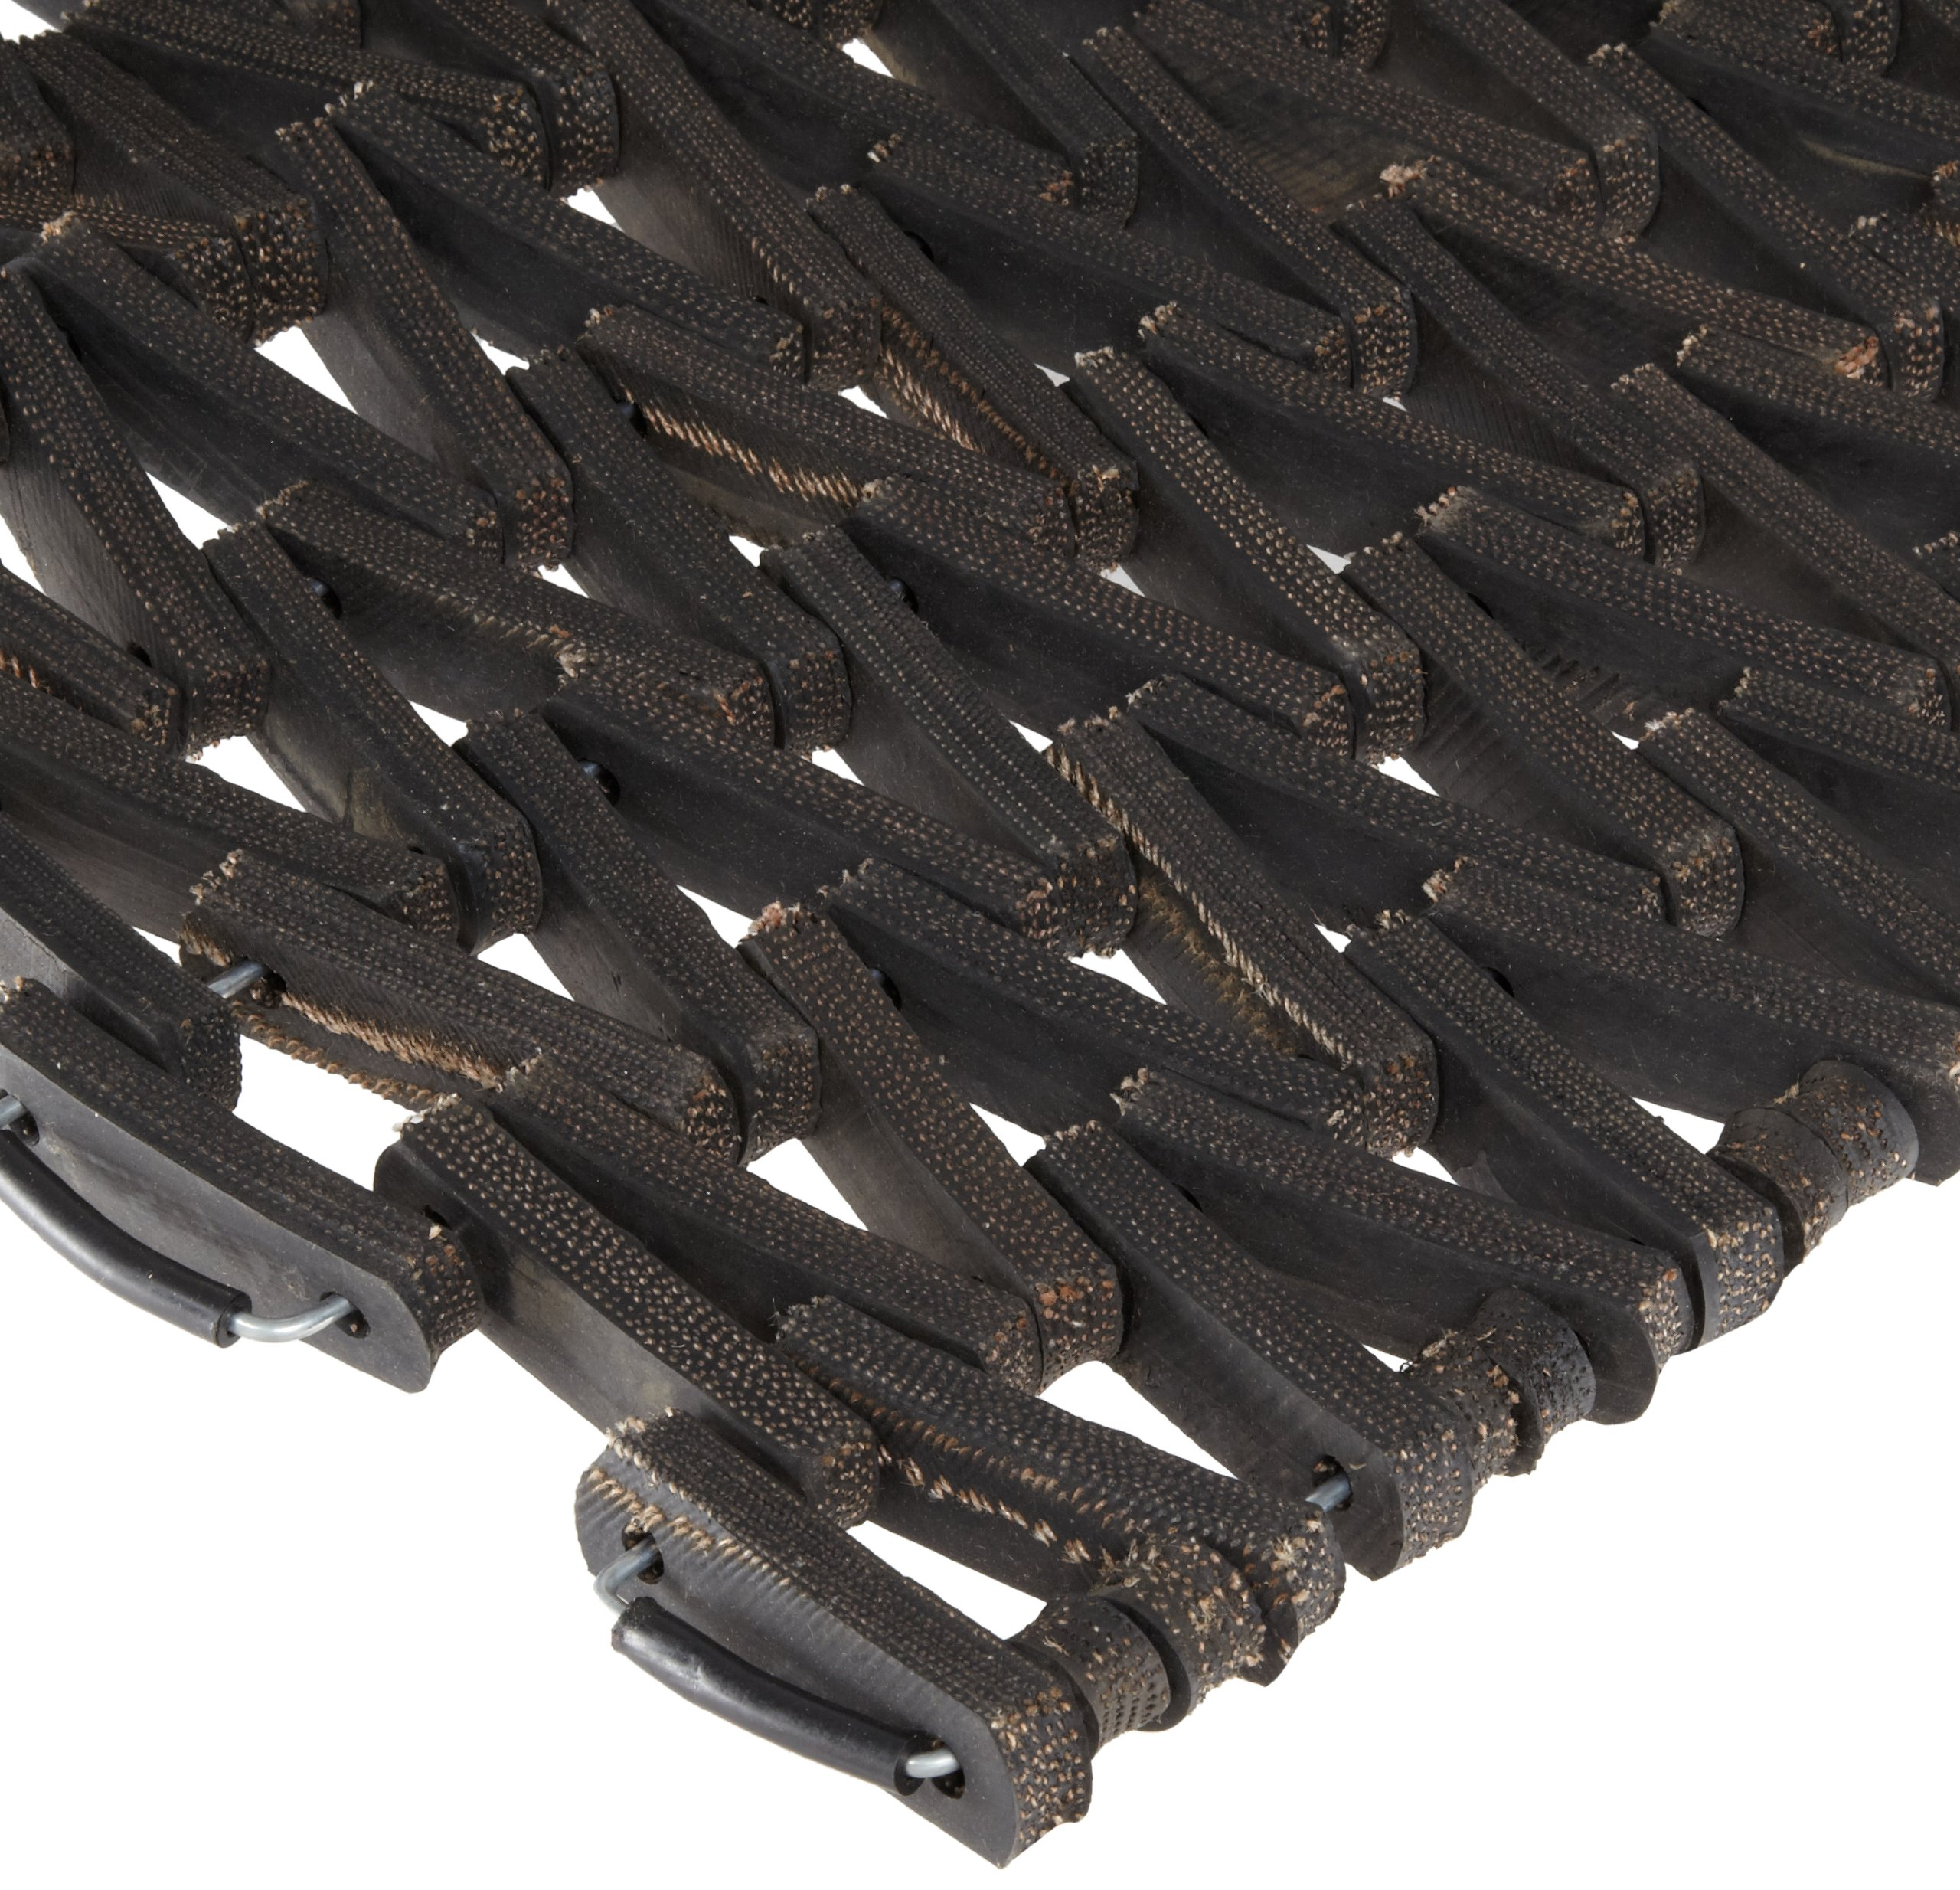 Durable Durite Recycled Tire-Link Outdoor Entrance Mat, Herringbone Weave, 30'' x 48'', Black